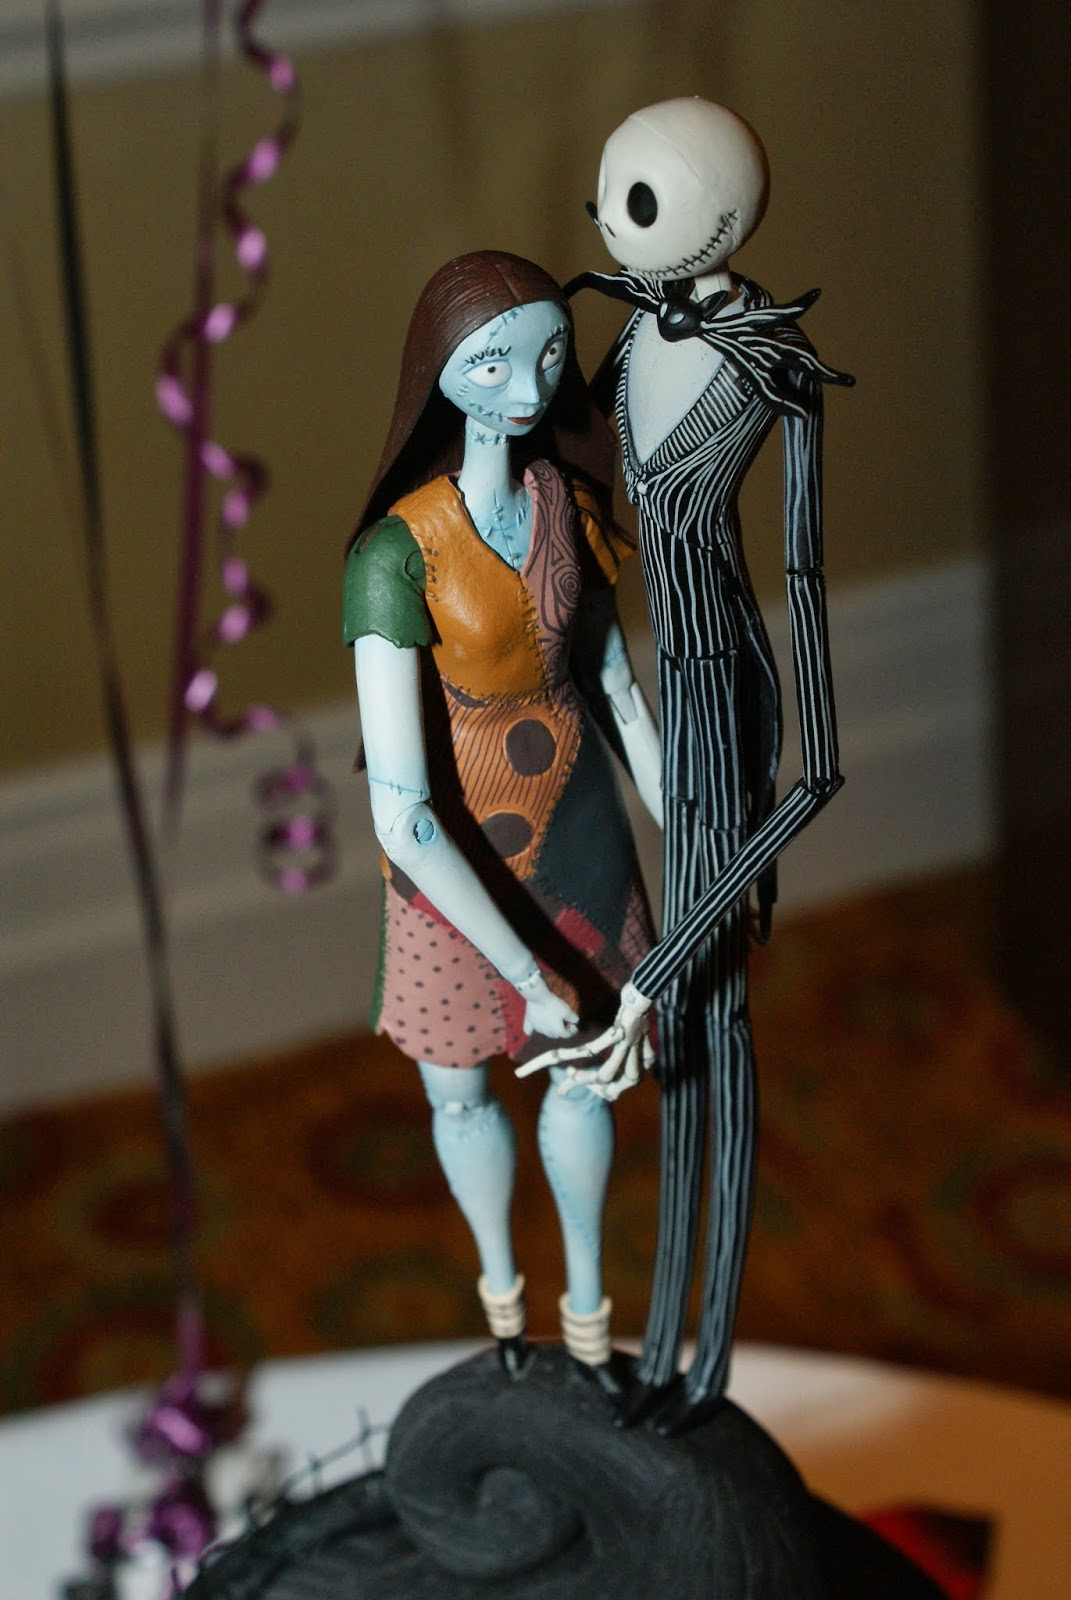 Nightmare before christmas wedding cake topper our nightmare before